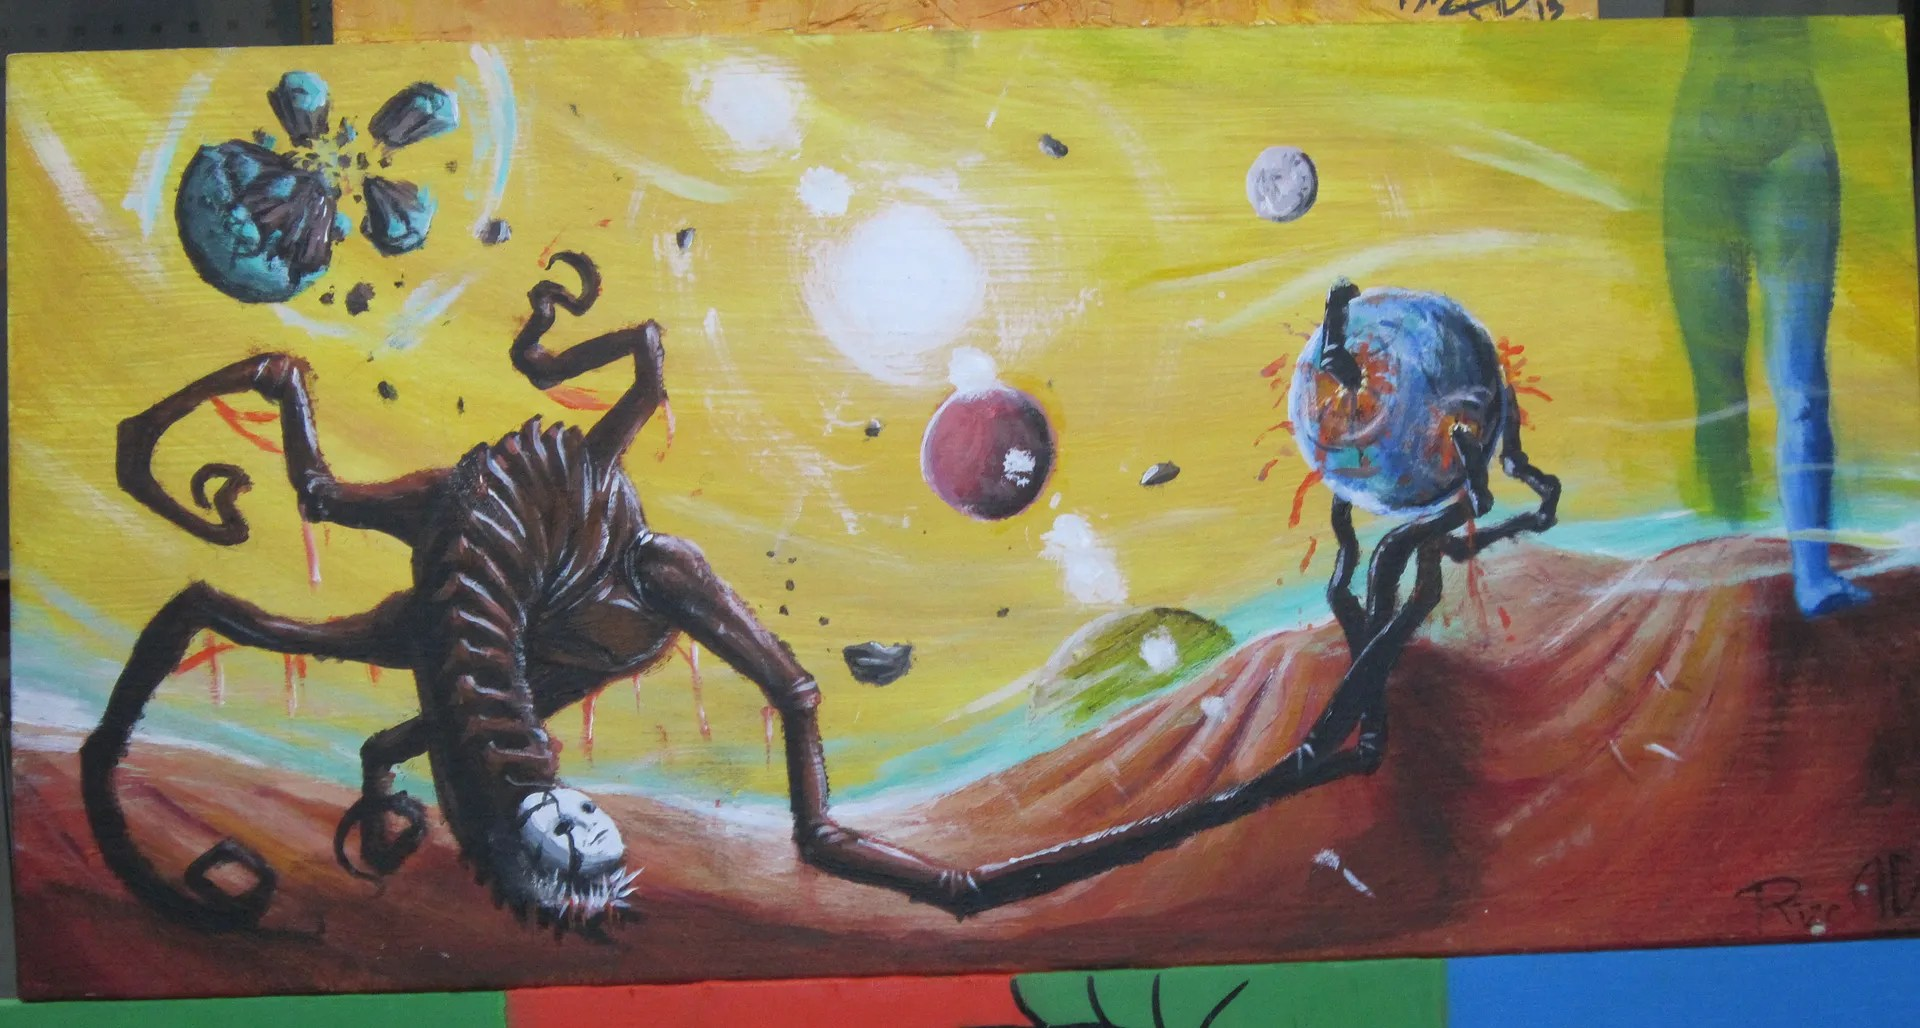 alien worlds, high school art class